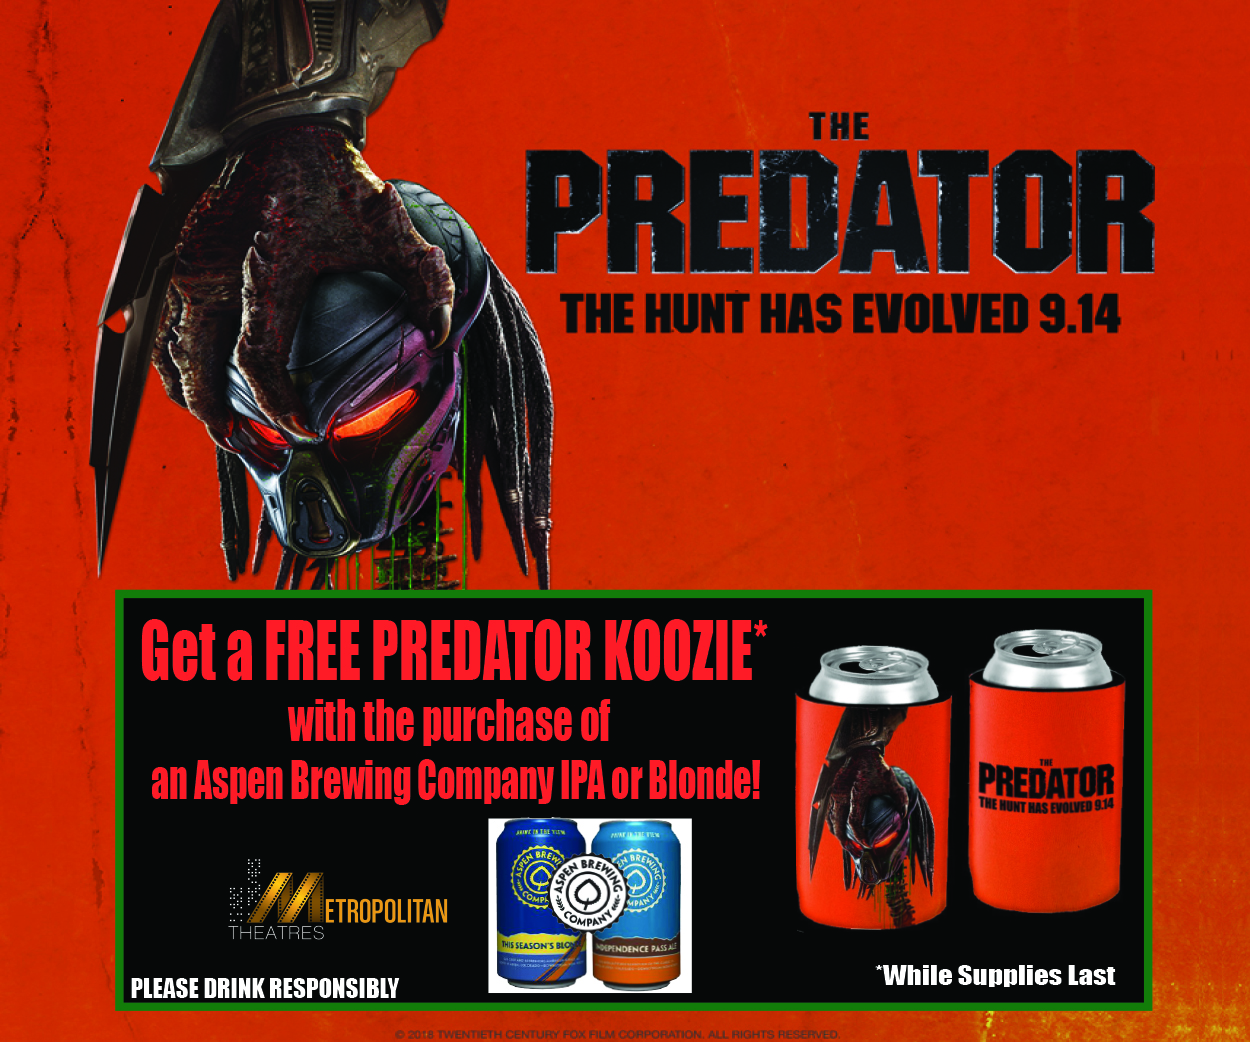 The Predator Bar Promotion